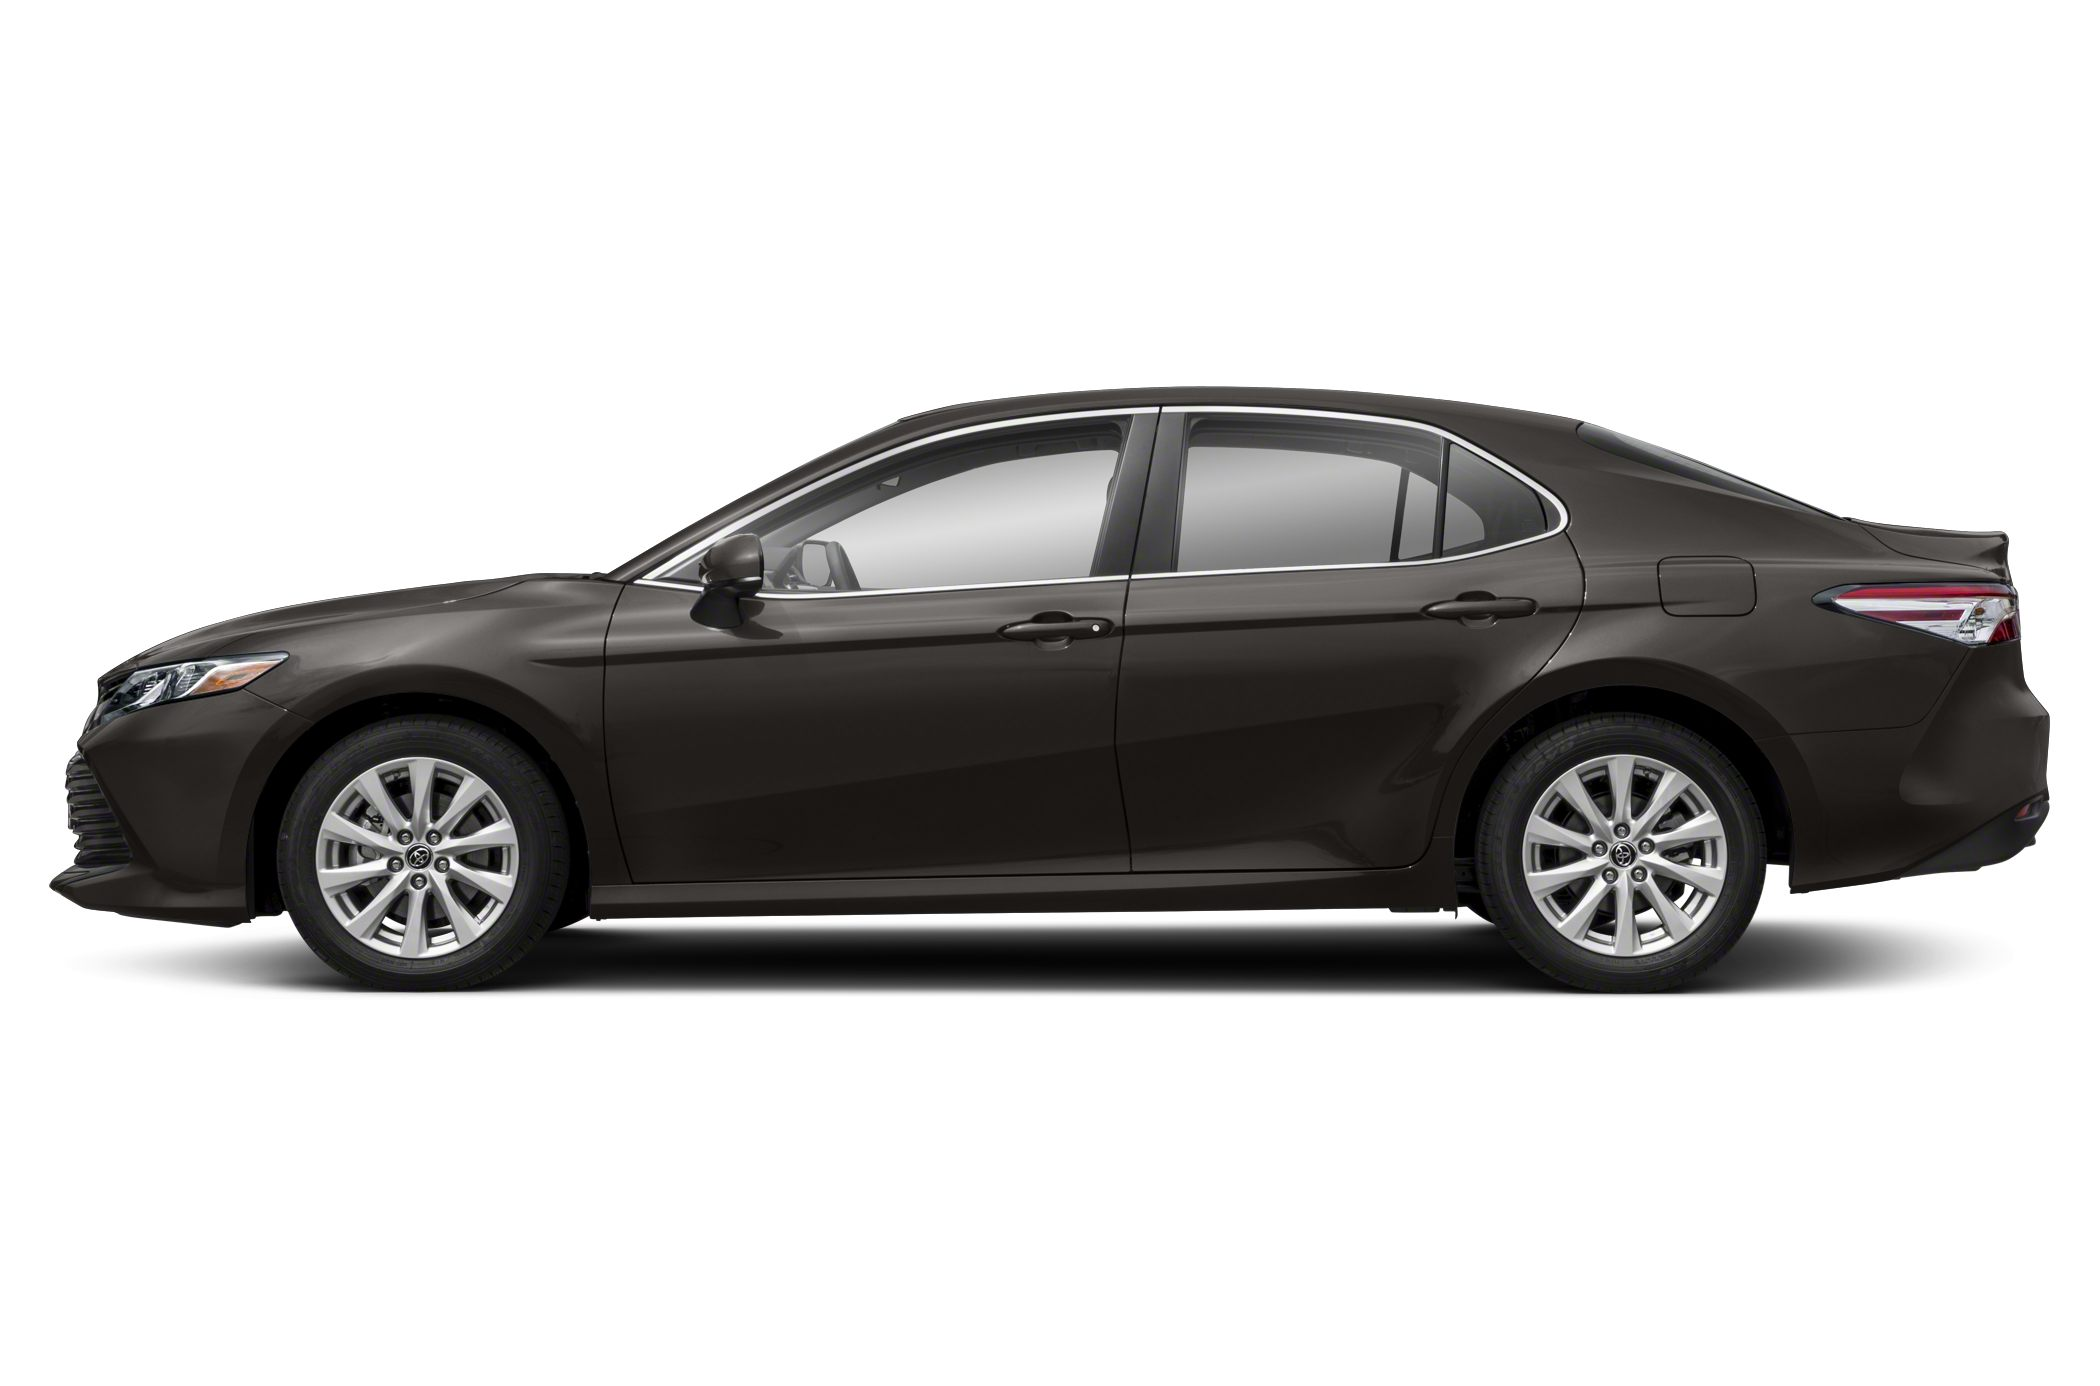 Acura Lease Deals >> See 2018 Toyota Camry Color Options - CarsDirect